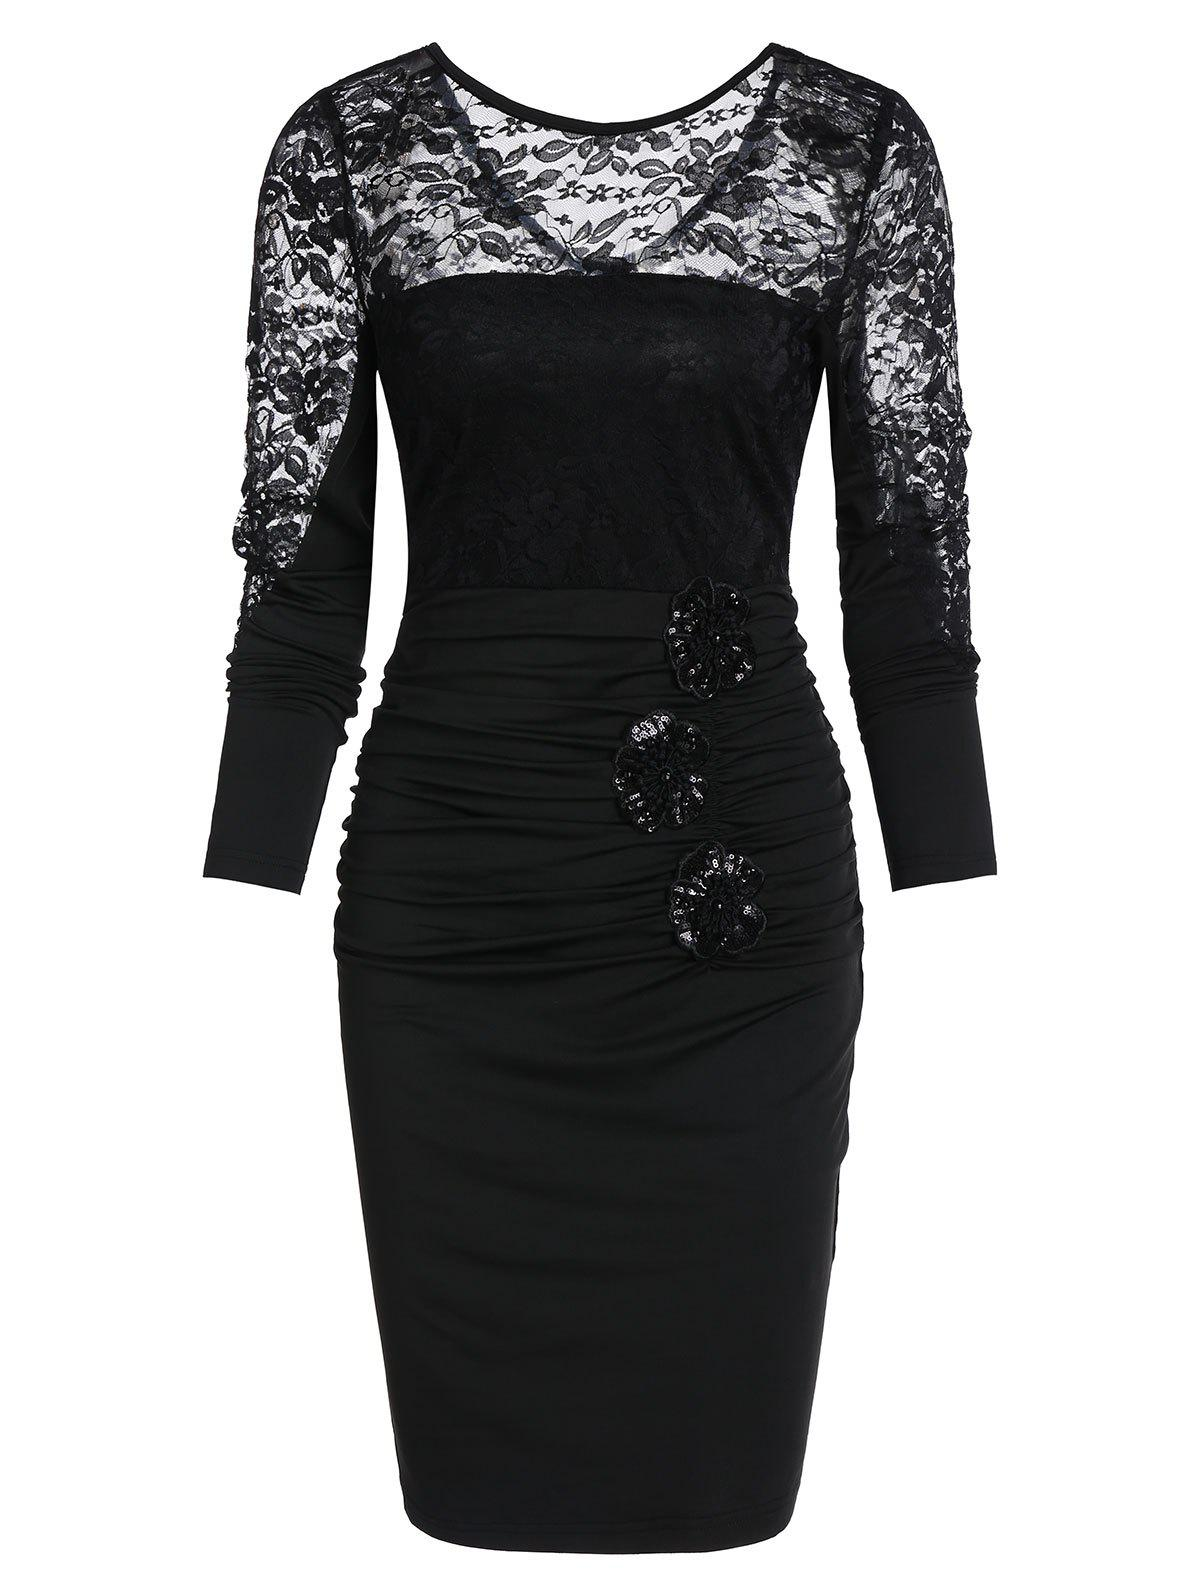 New Sexy Lace See Through Sheath Dress